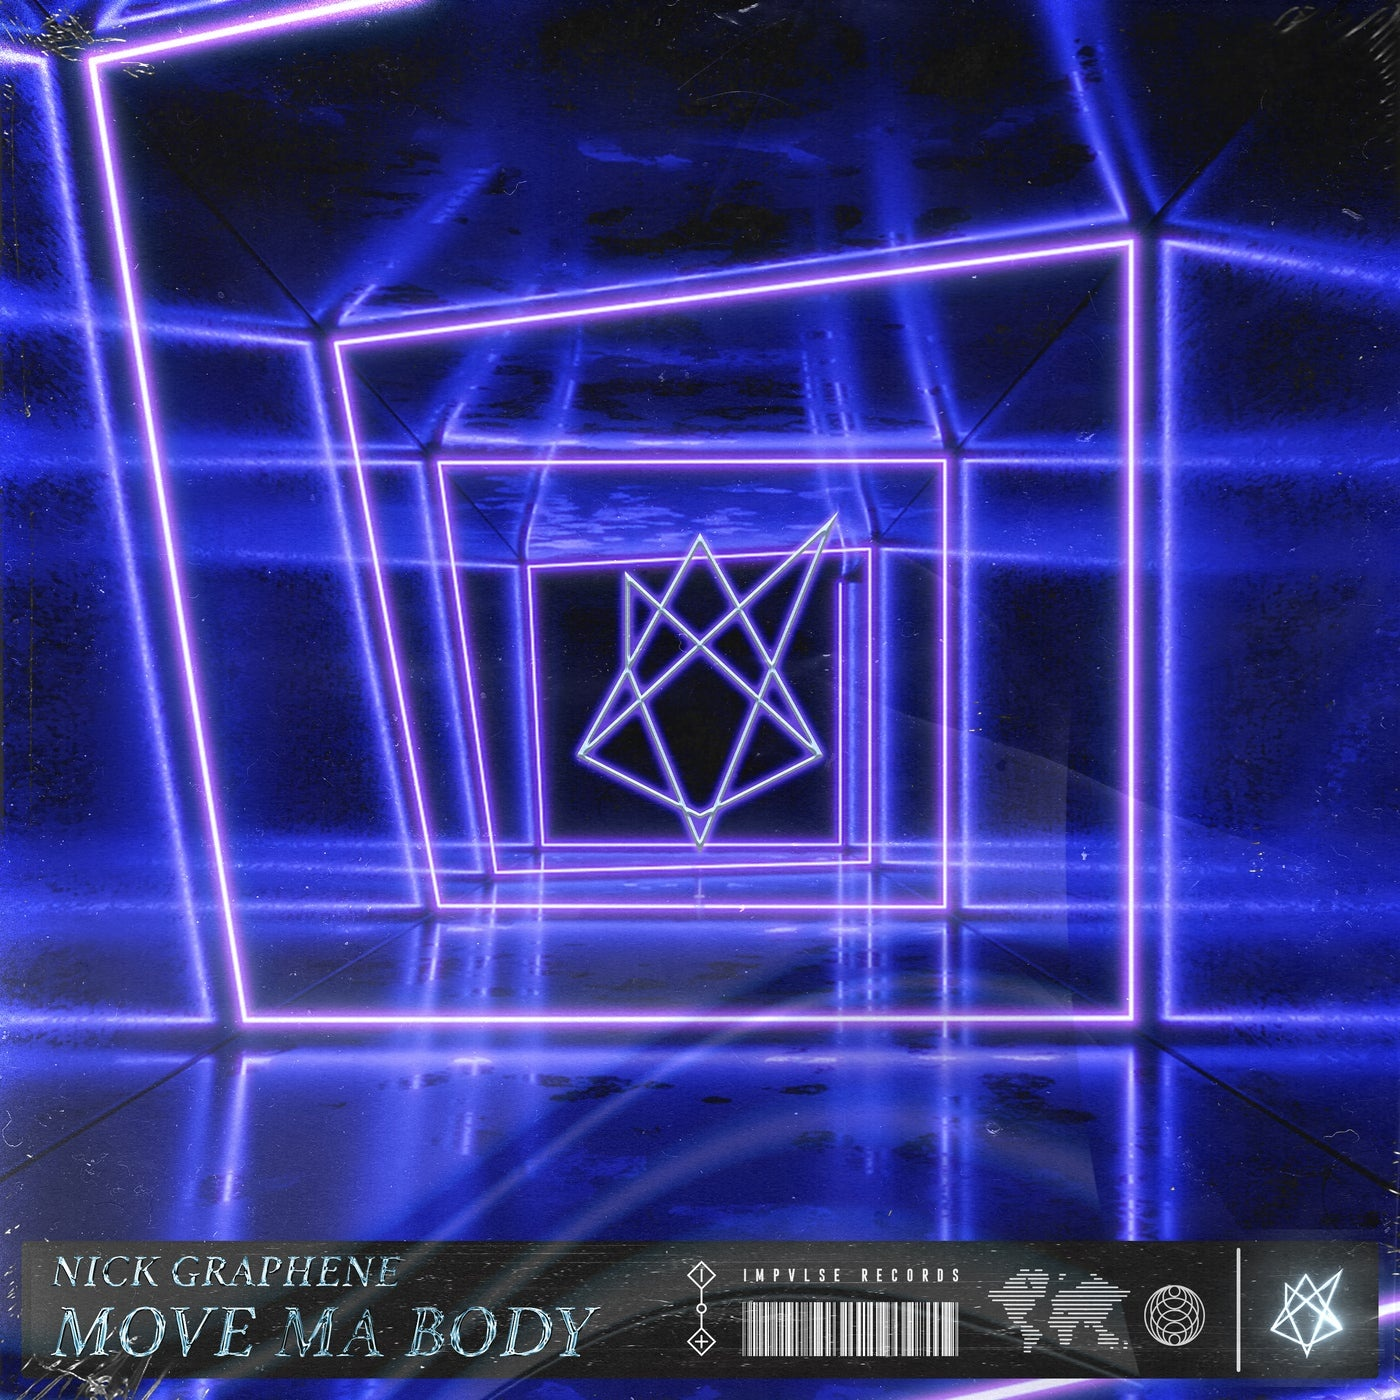 Cover - Nick Graphene - Move Ma Body (Extended Mix)